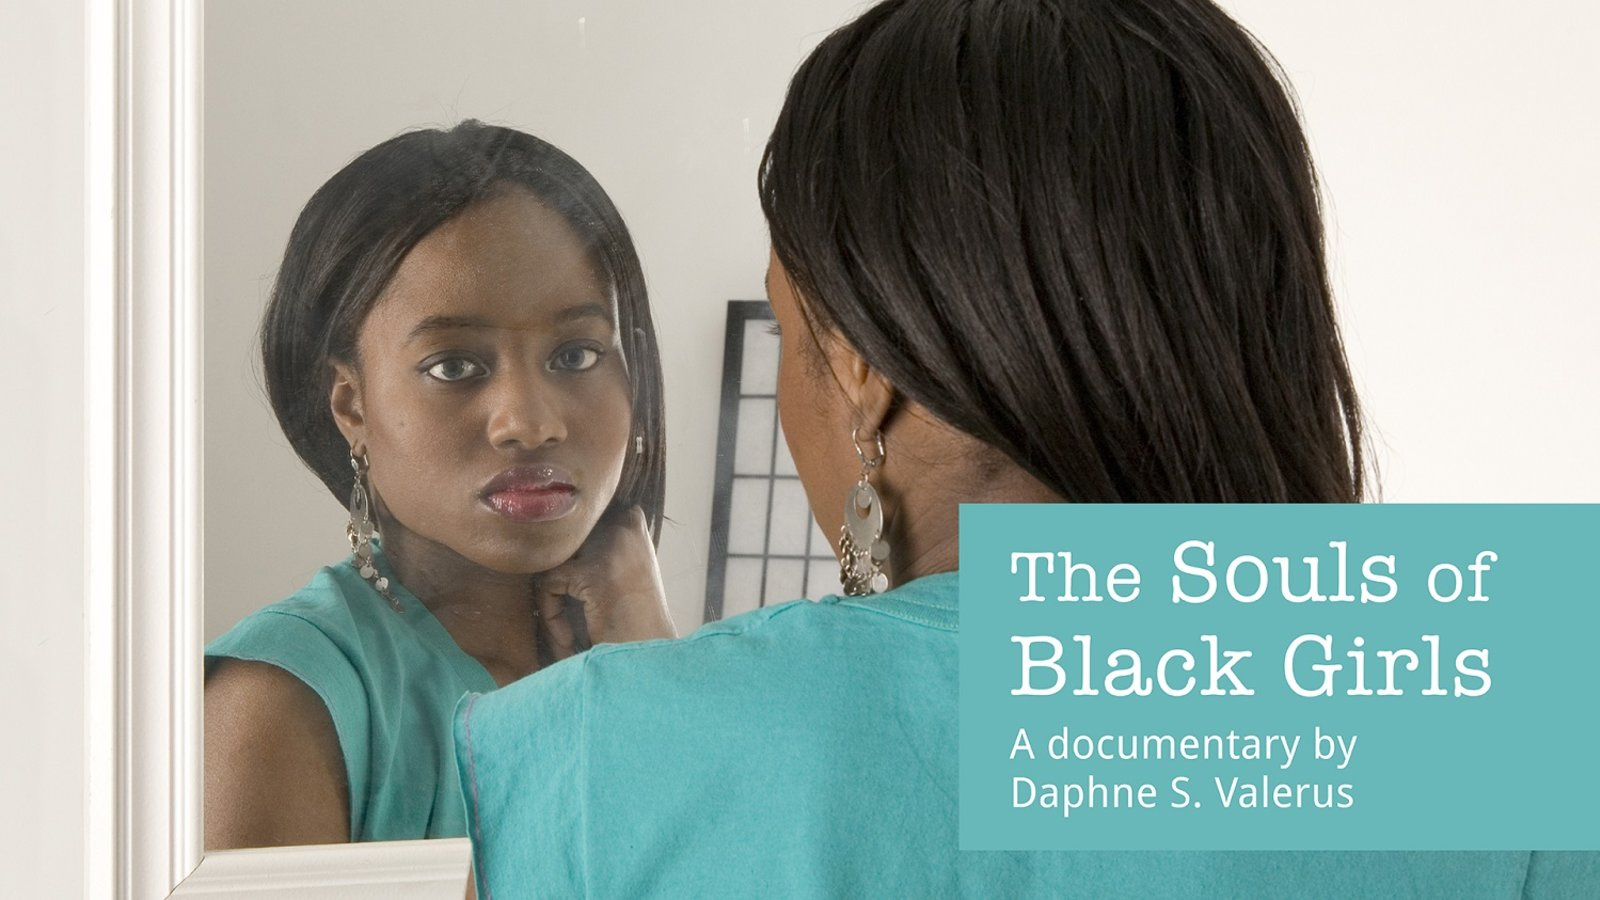 Souls of Black Girls - The Image of Women of Color in the Media